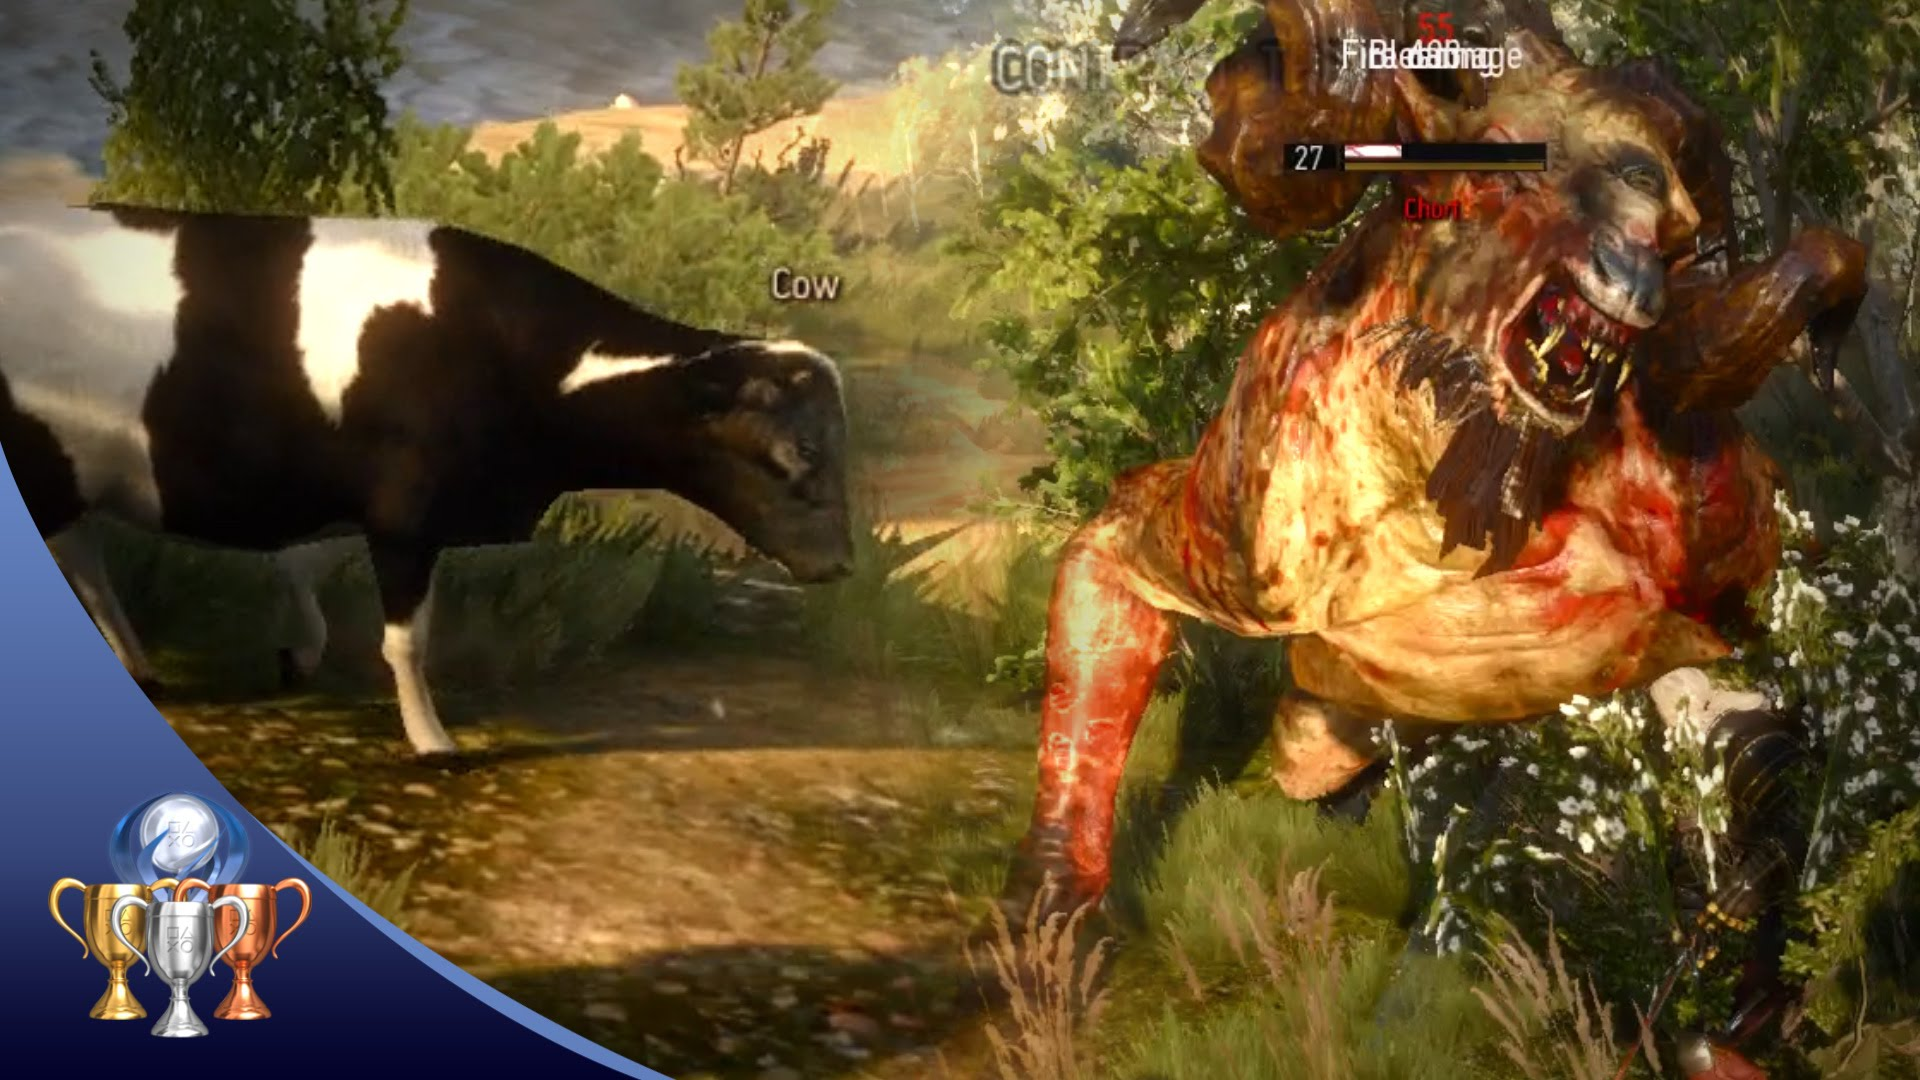 The Witcher 3 - Cow Exploit Hilariously Fixed (Bovine